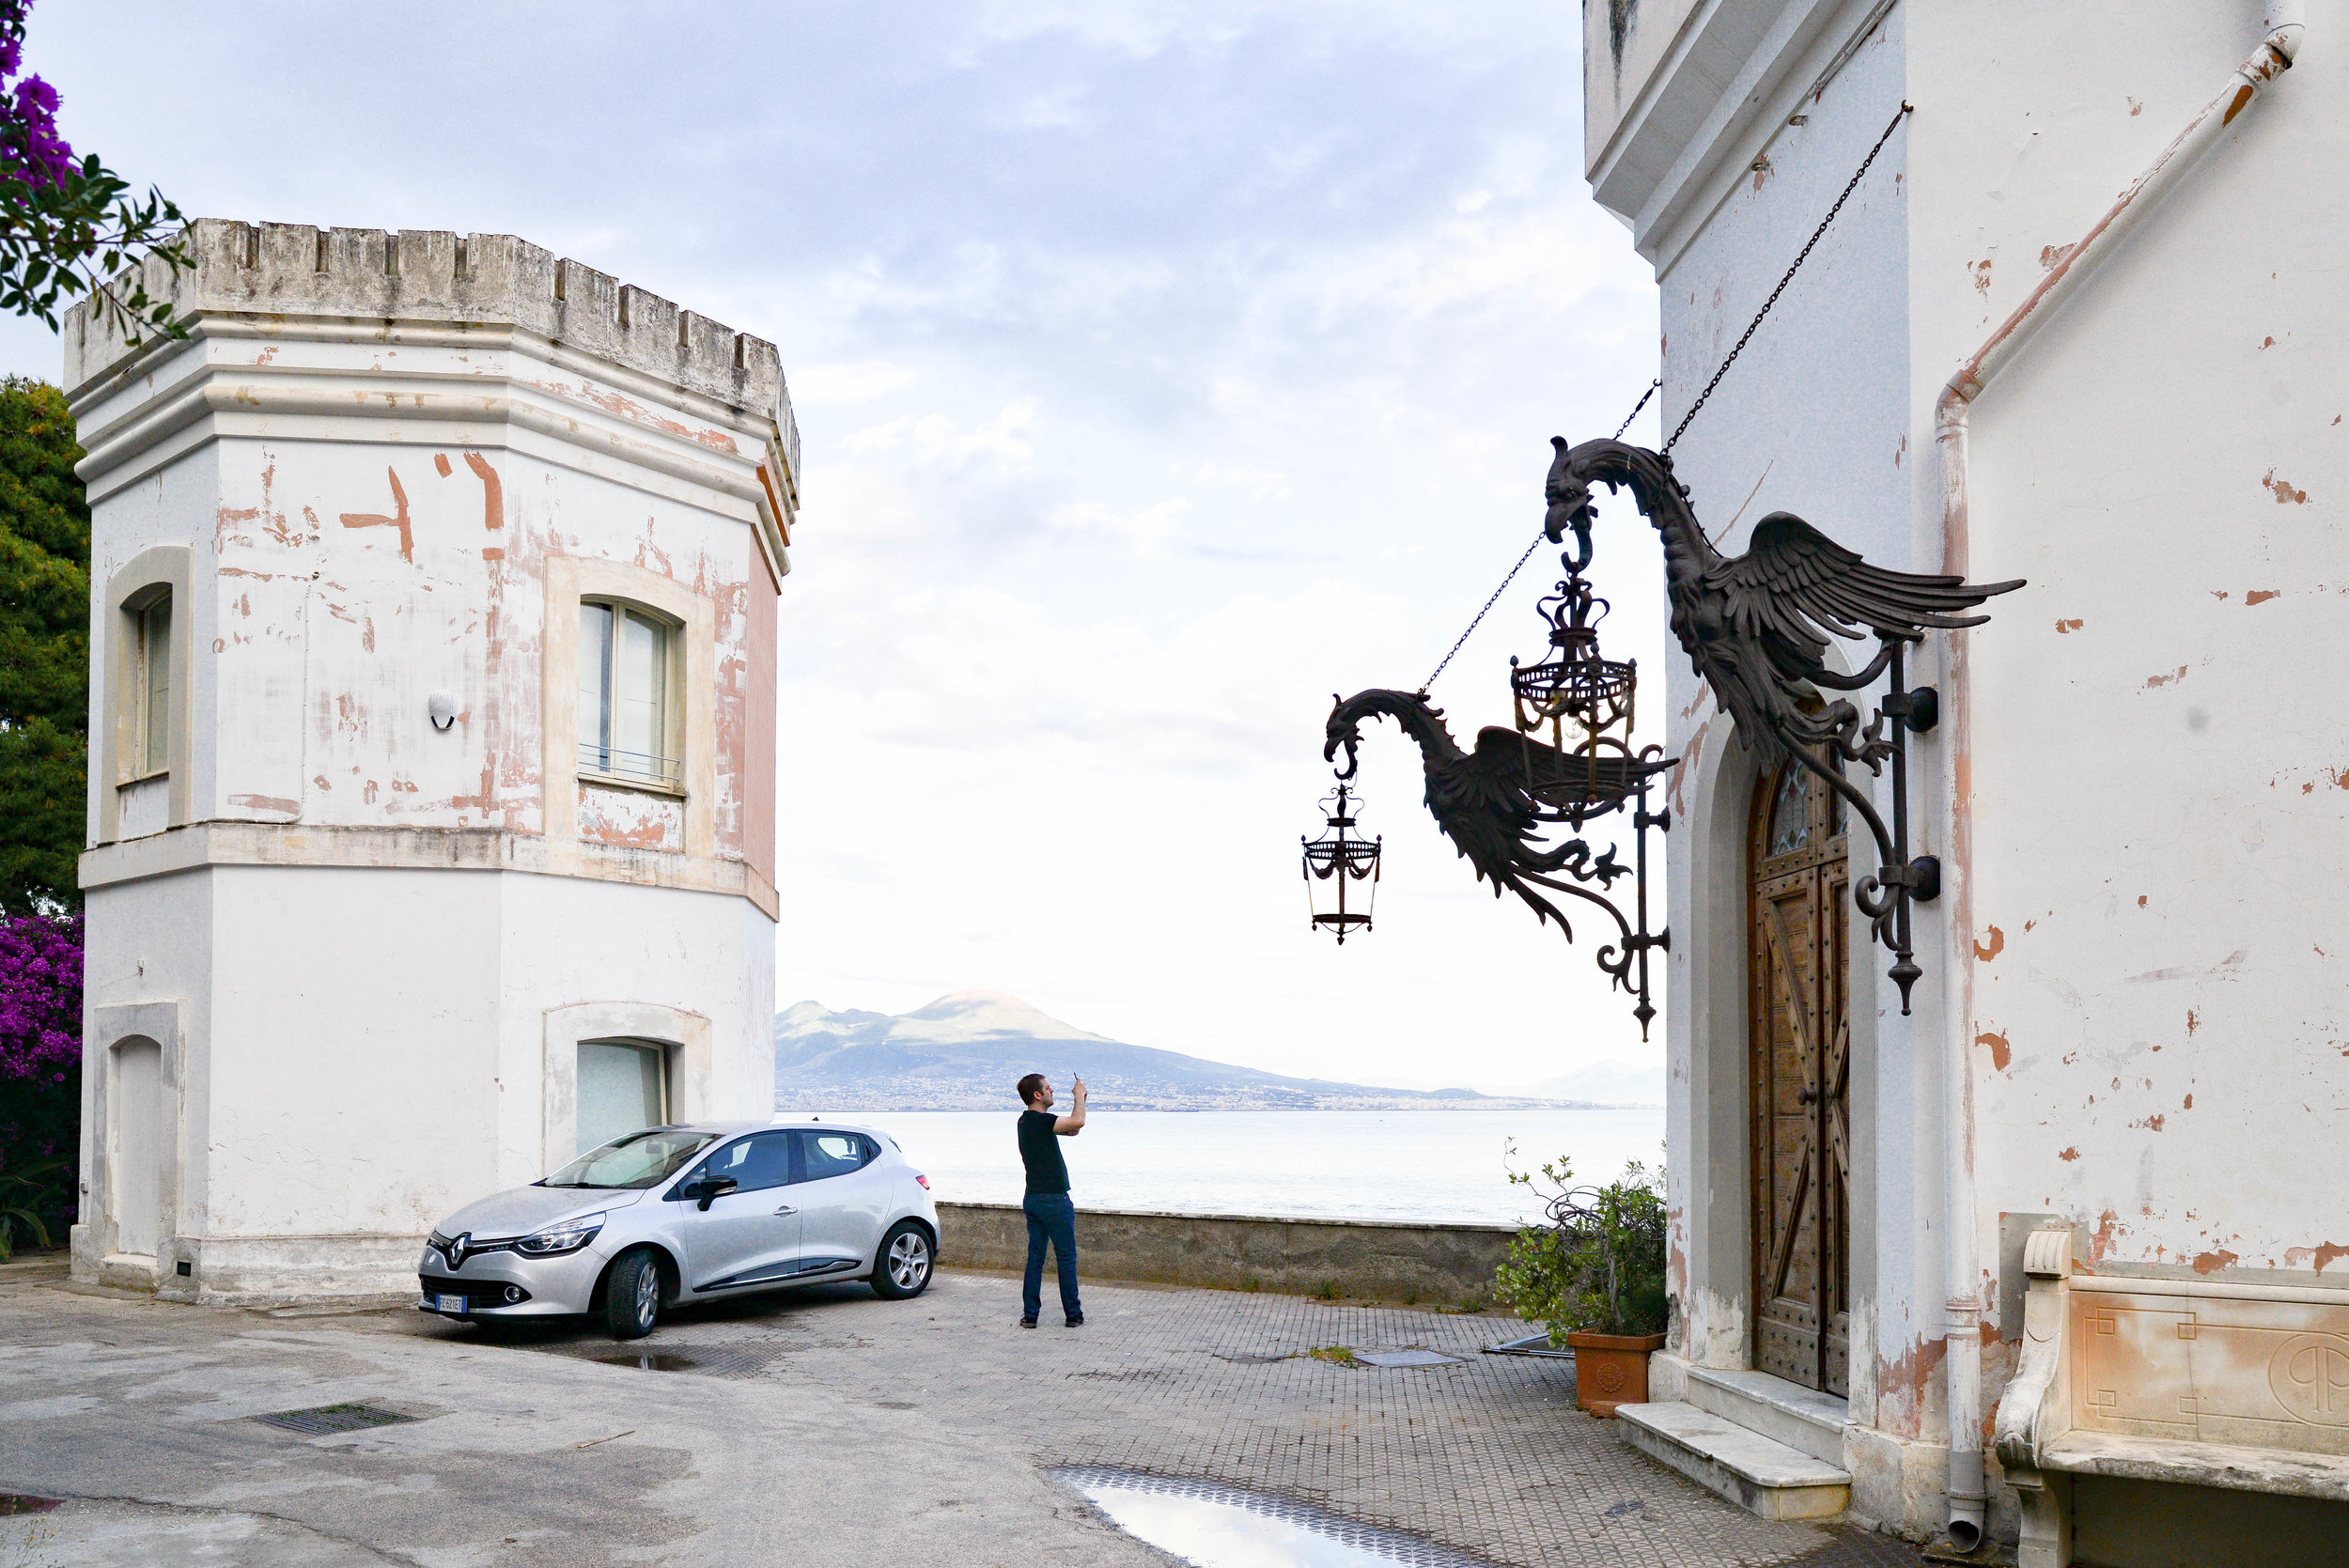 Guardian Tower left, Entry staircase right, Jack taking a picture of the view | Posillipo, Italy | Lauren L Caron © 2018